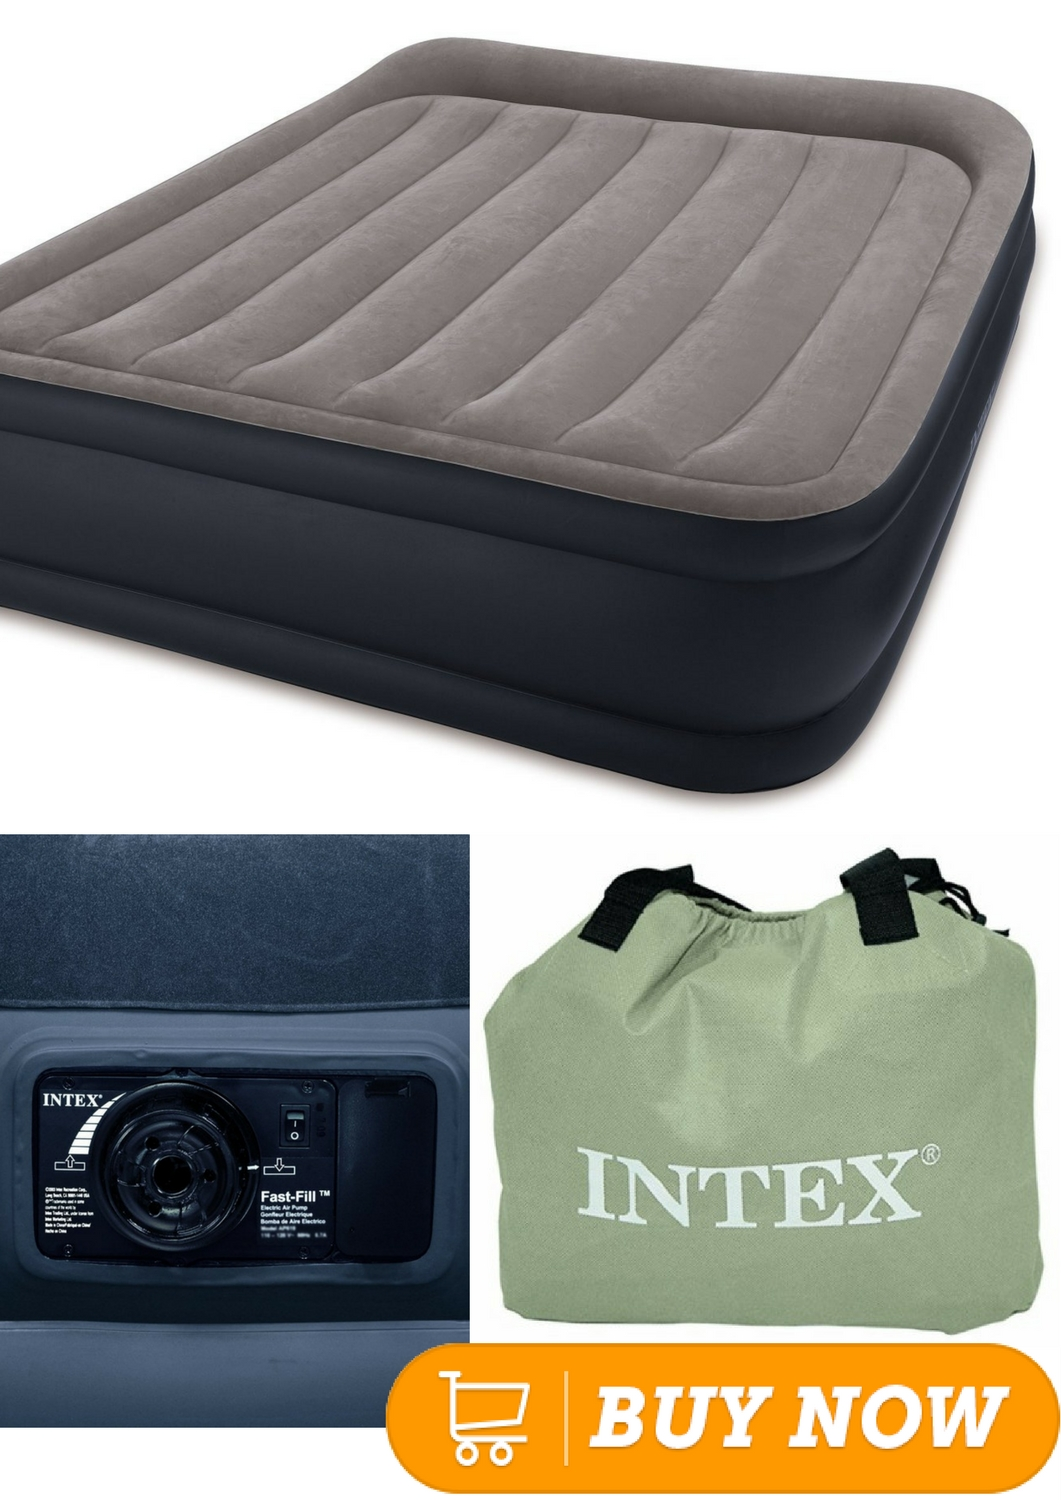 Intex Built In Pump Intex Pillow Rest Raised Airbed With Built In Pillow And Electric